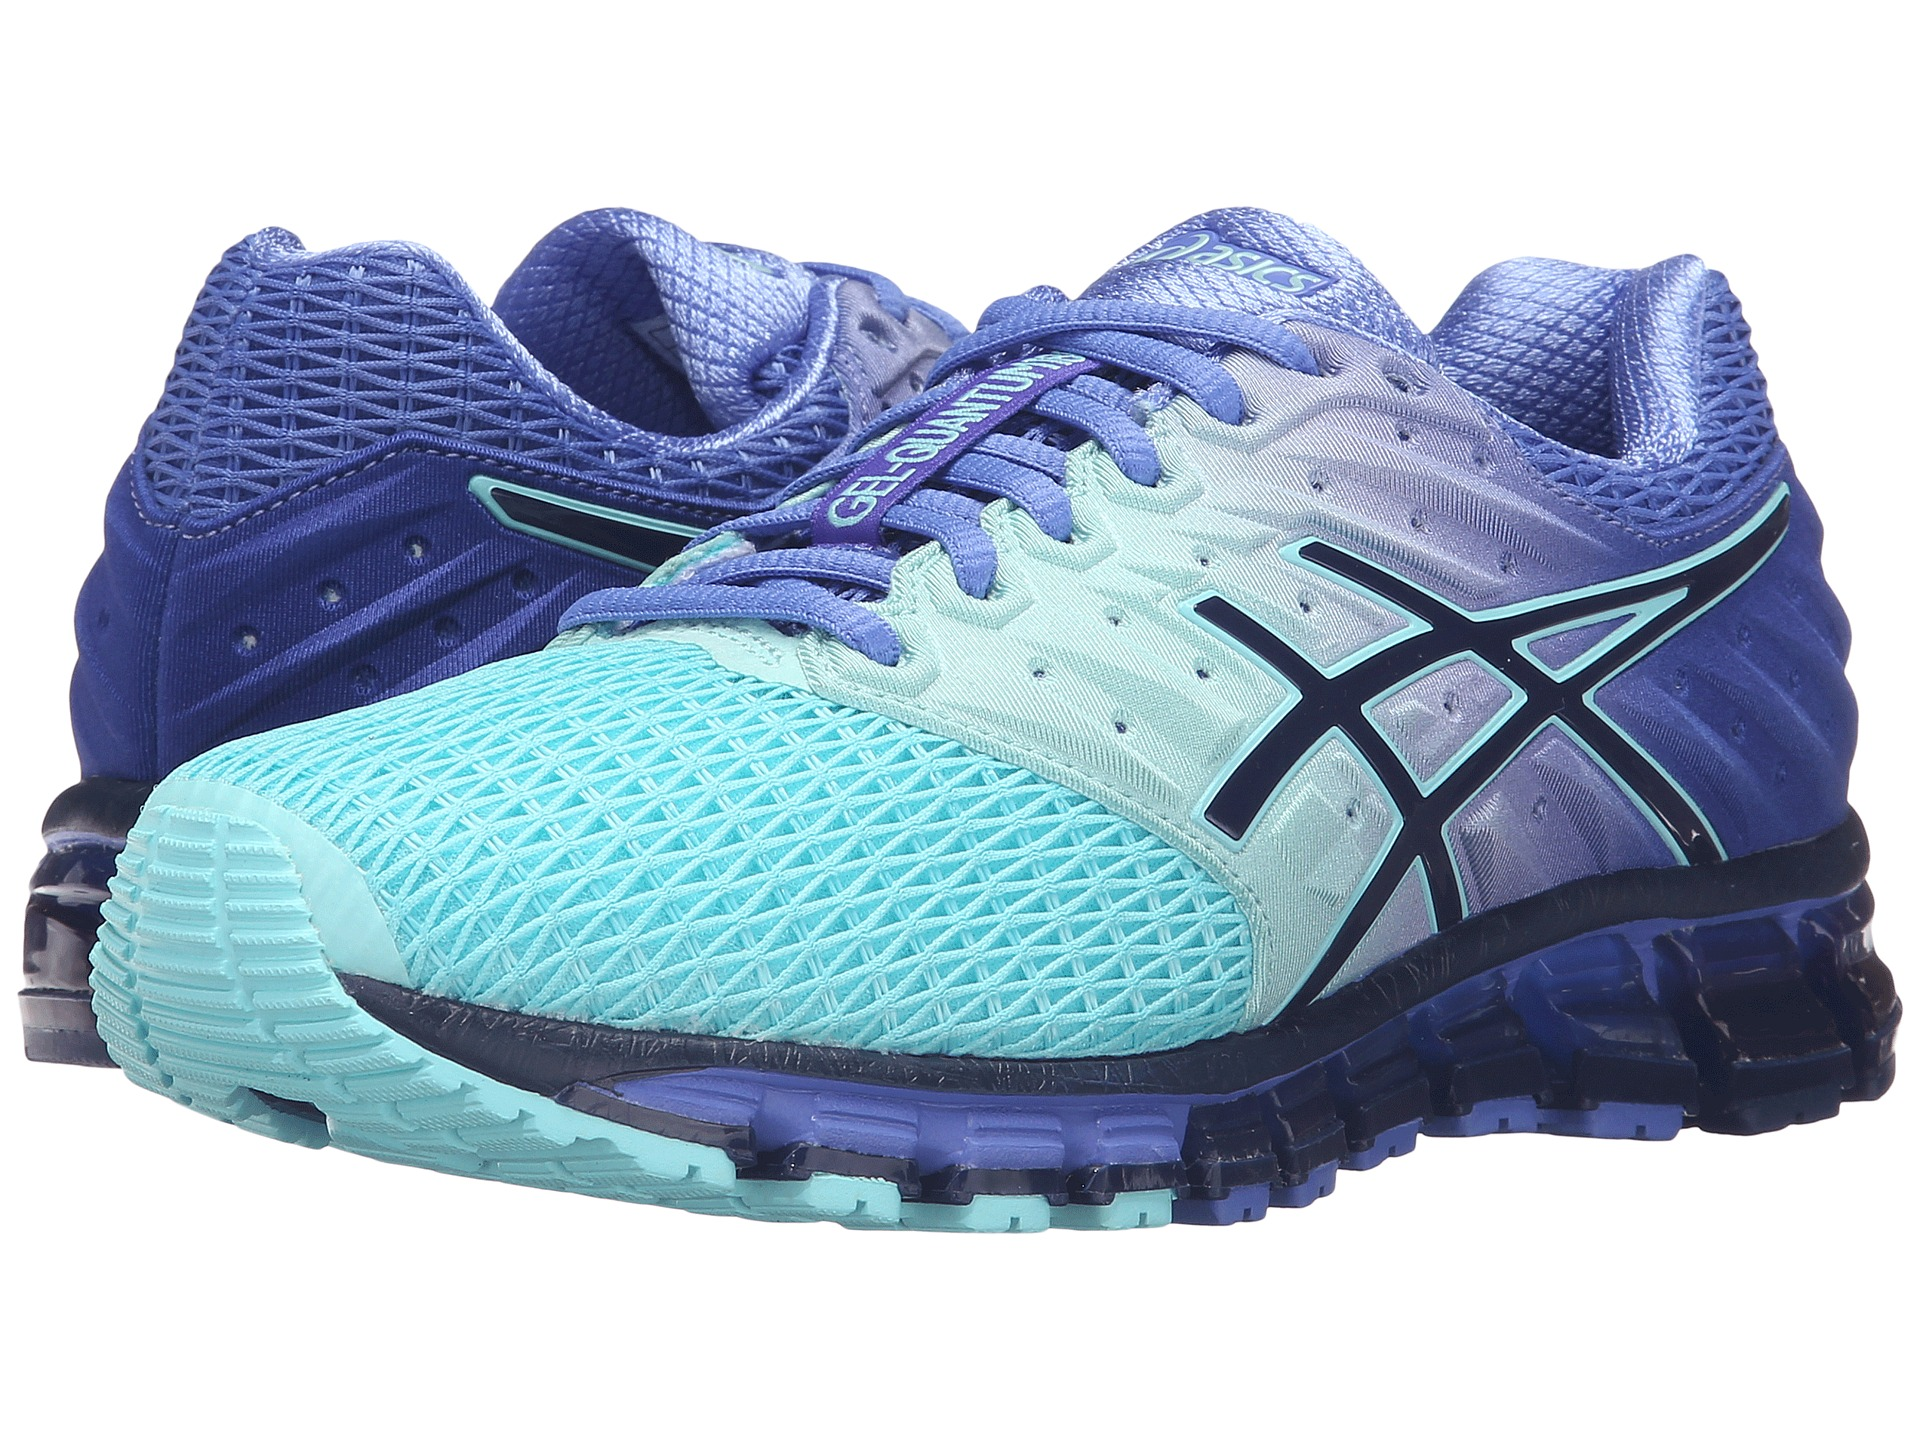 asics gel quantum 180 2 aruba blue blue print primrose purple free shipping both ways. Black Bedroom Furniture Sets. Home Design Ideas